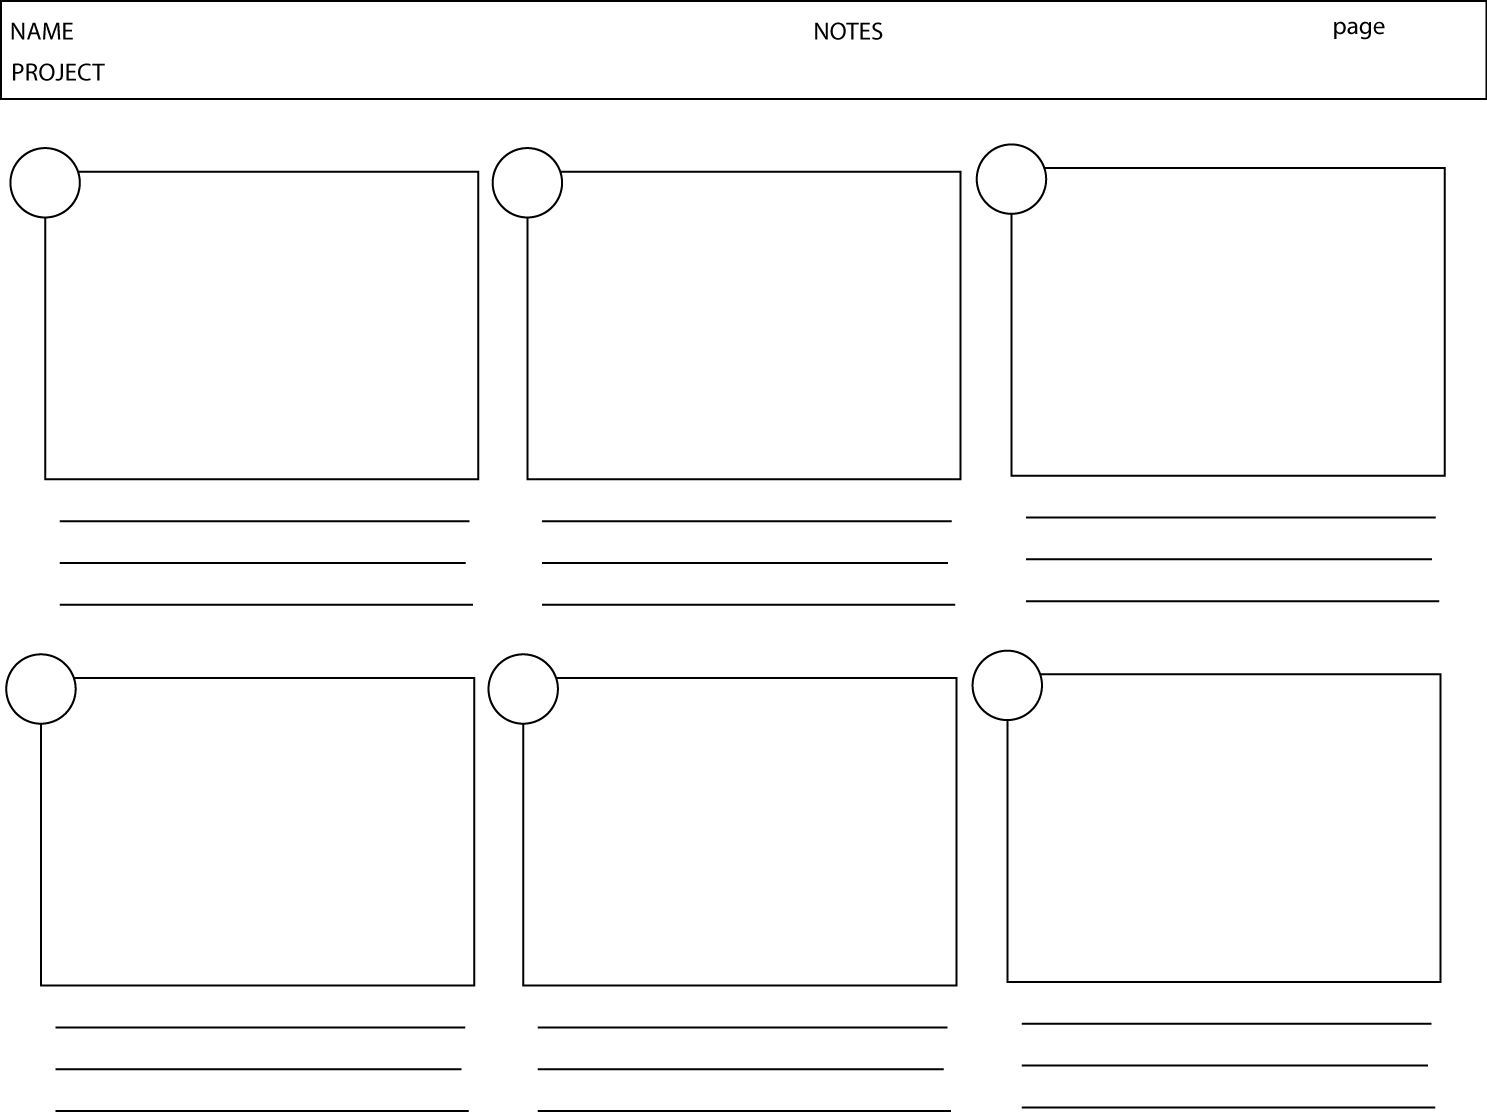 Image result for animation storyboard plan